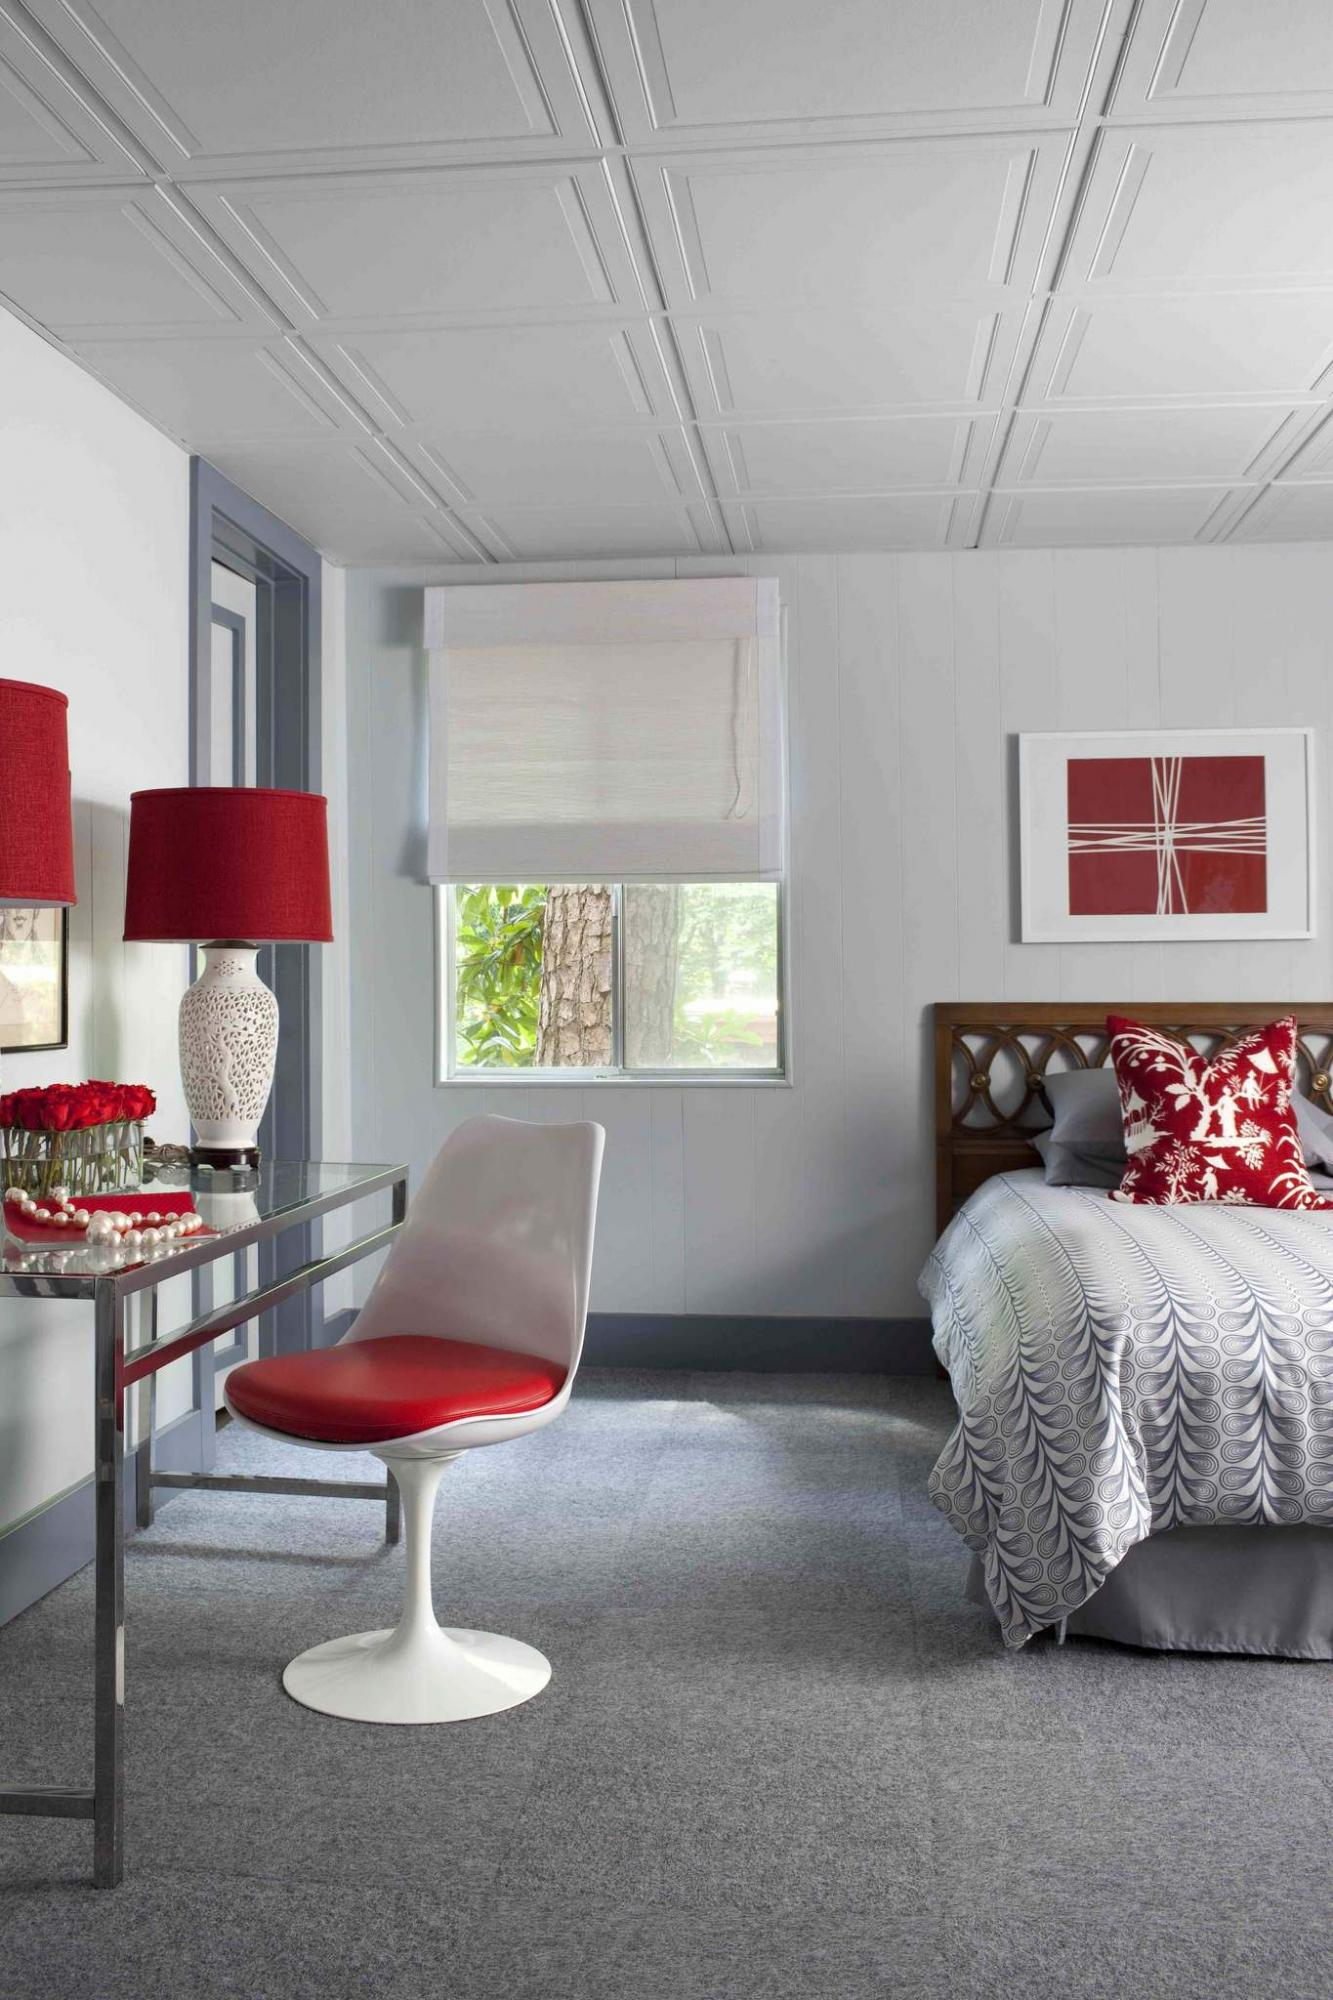 <p>Sarah Dorio / HGTV</p><p>Rust on the grids of a drop ceiling is a recipe for disaster and requires remediation.</p>